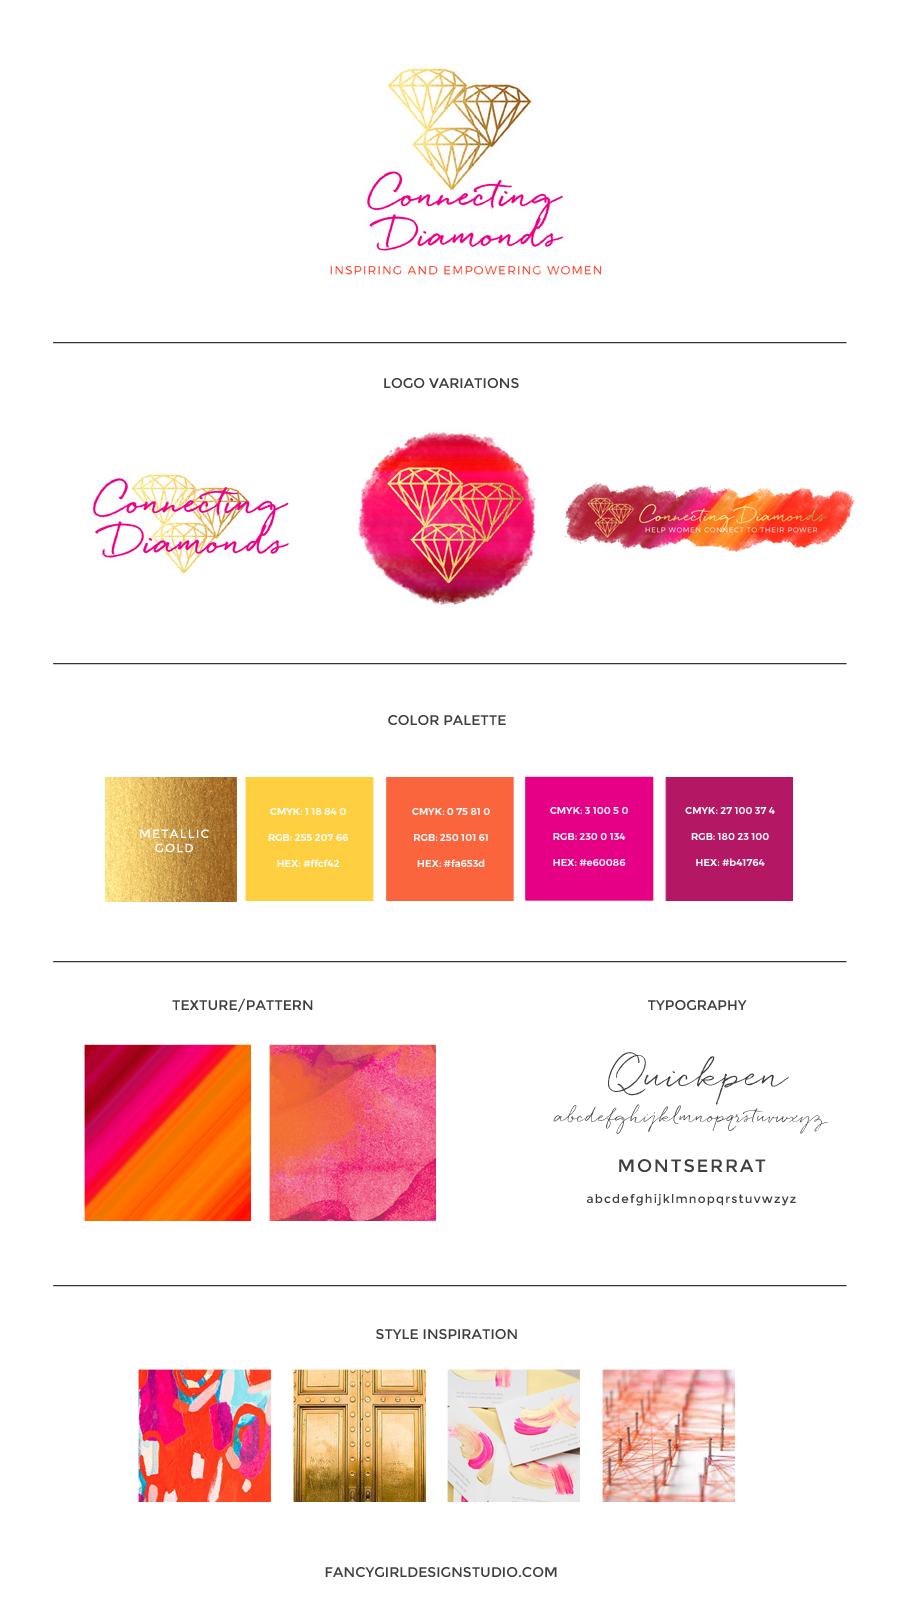 brand identity guide for connecting diamonds